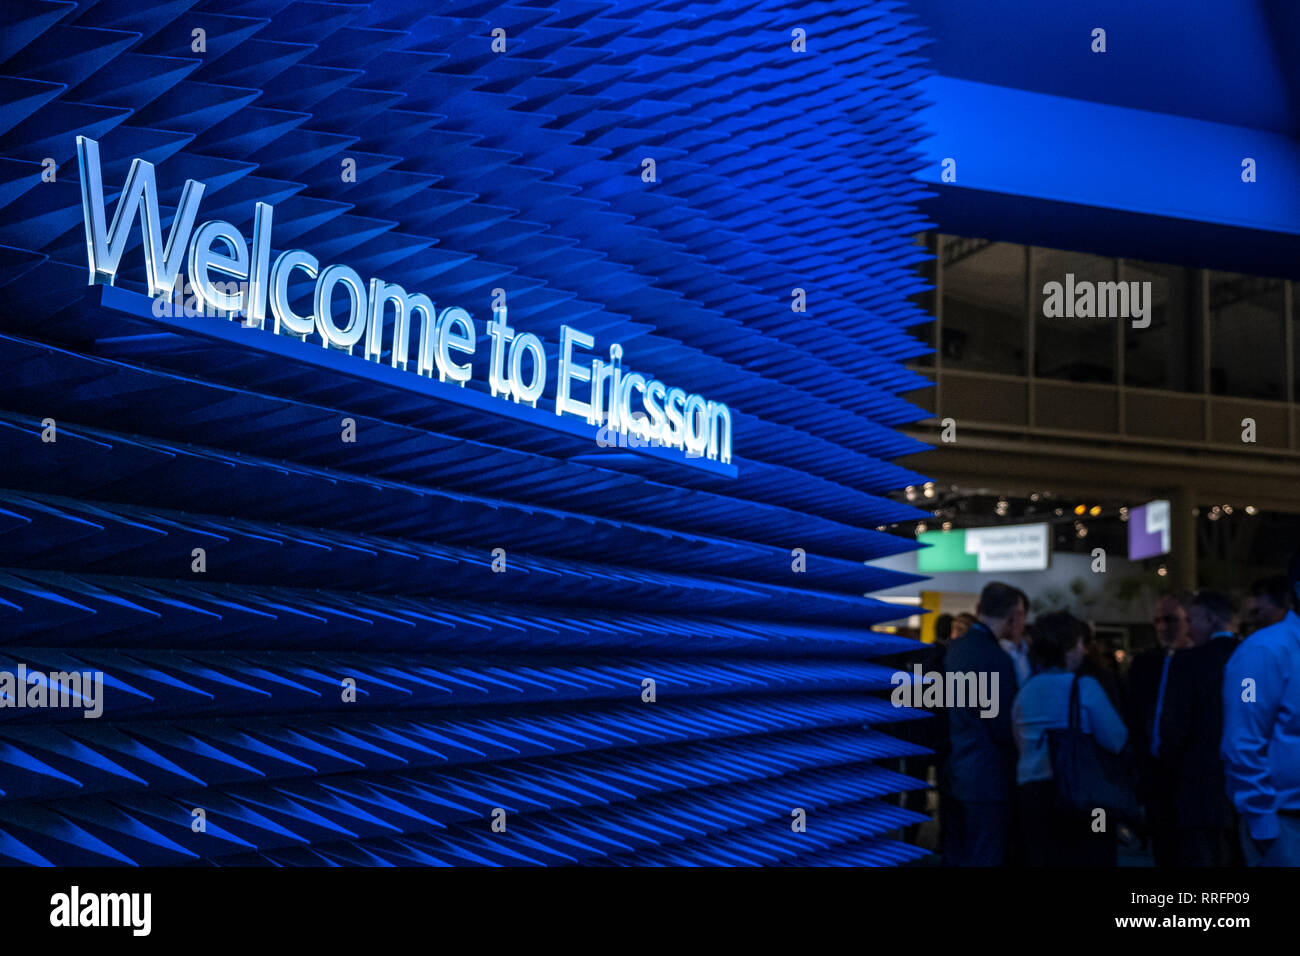 The Ericsson logo is seen during MWC 2019  The MWC2019